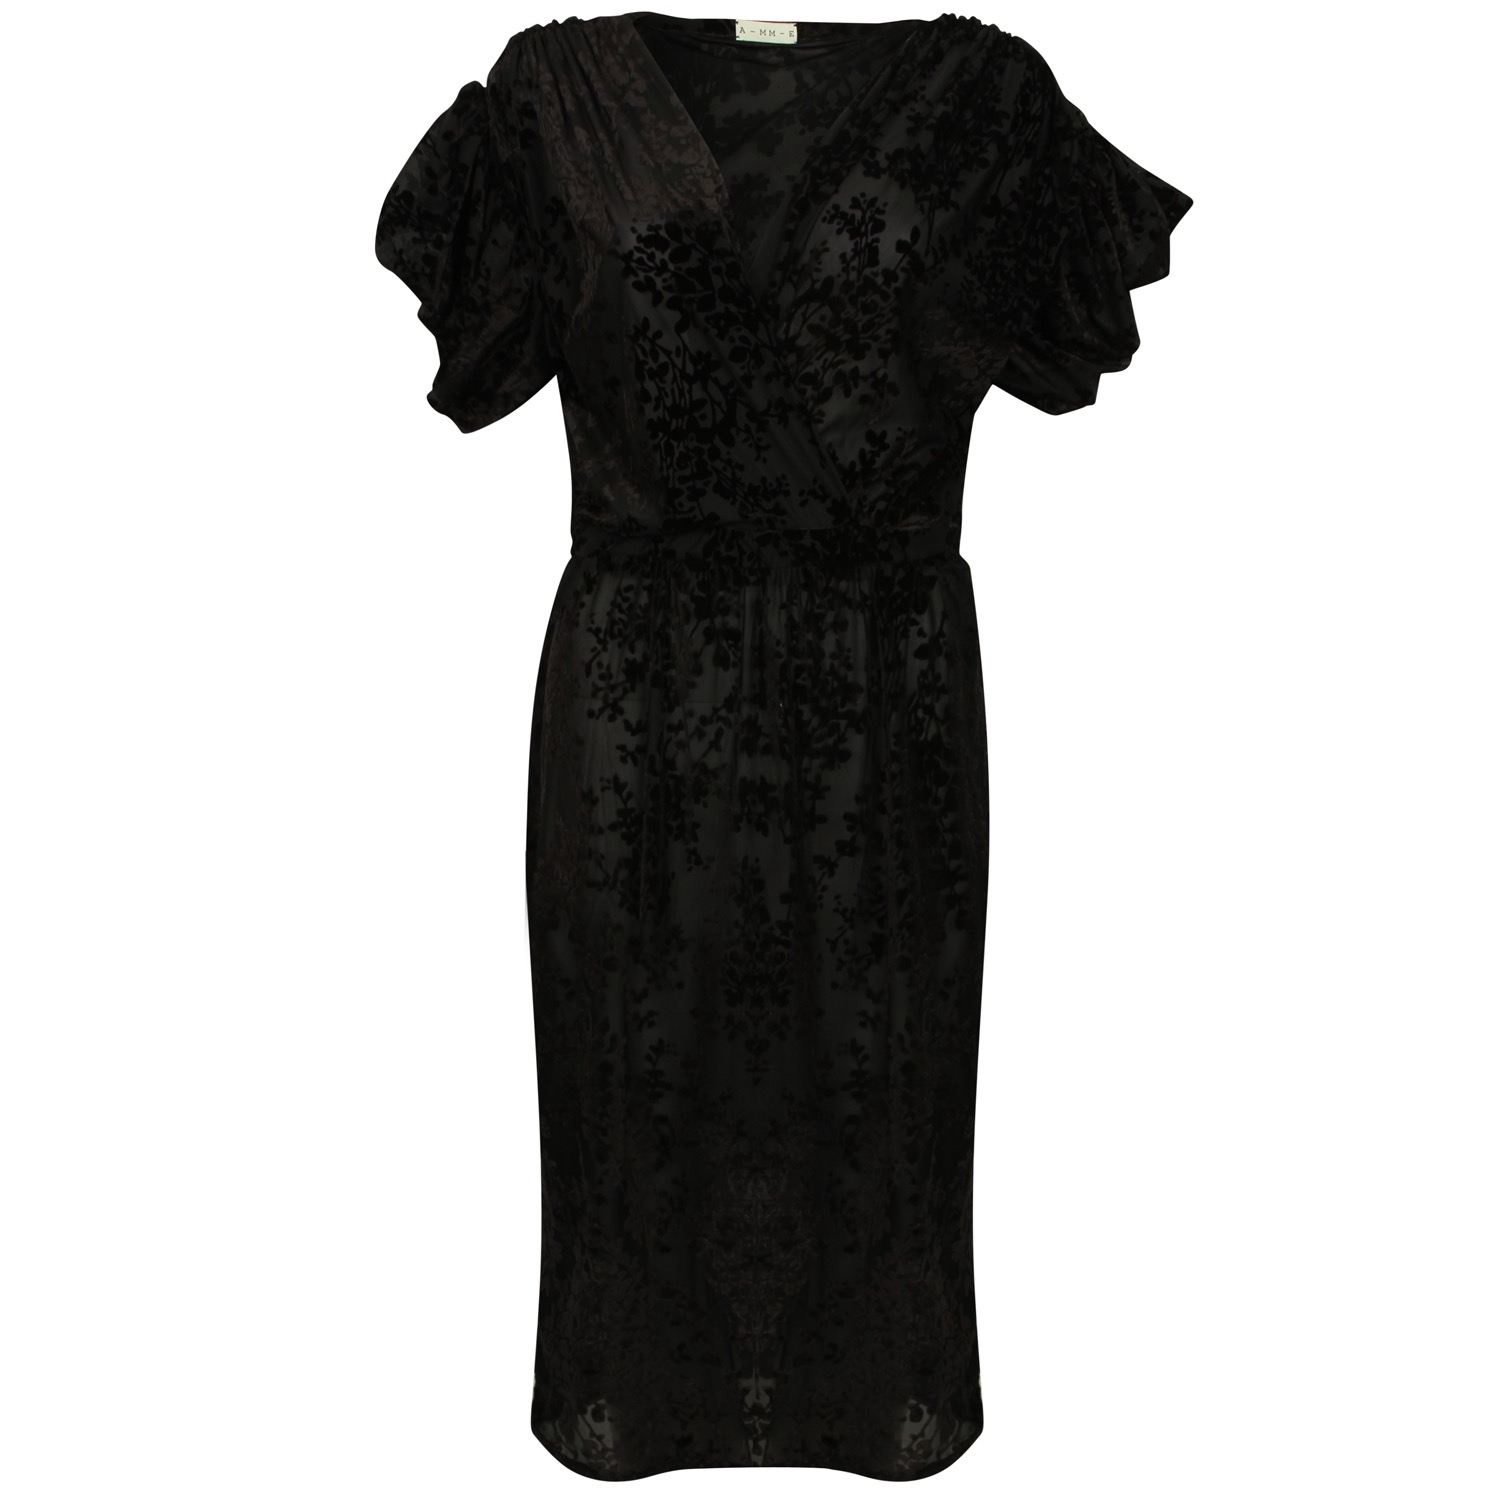 The Black Lace Wrap Dress